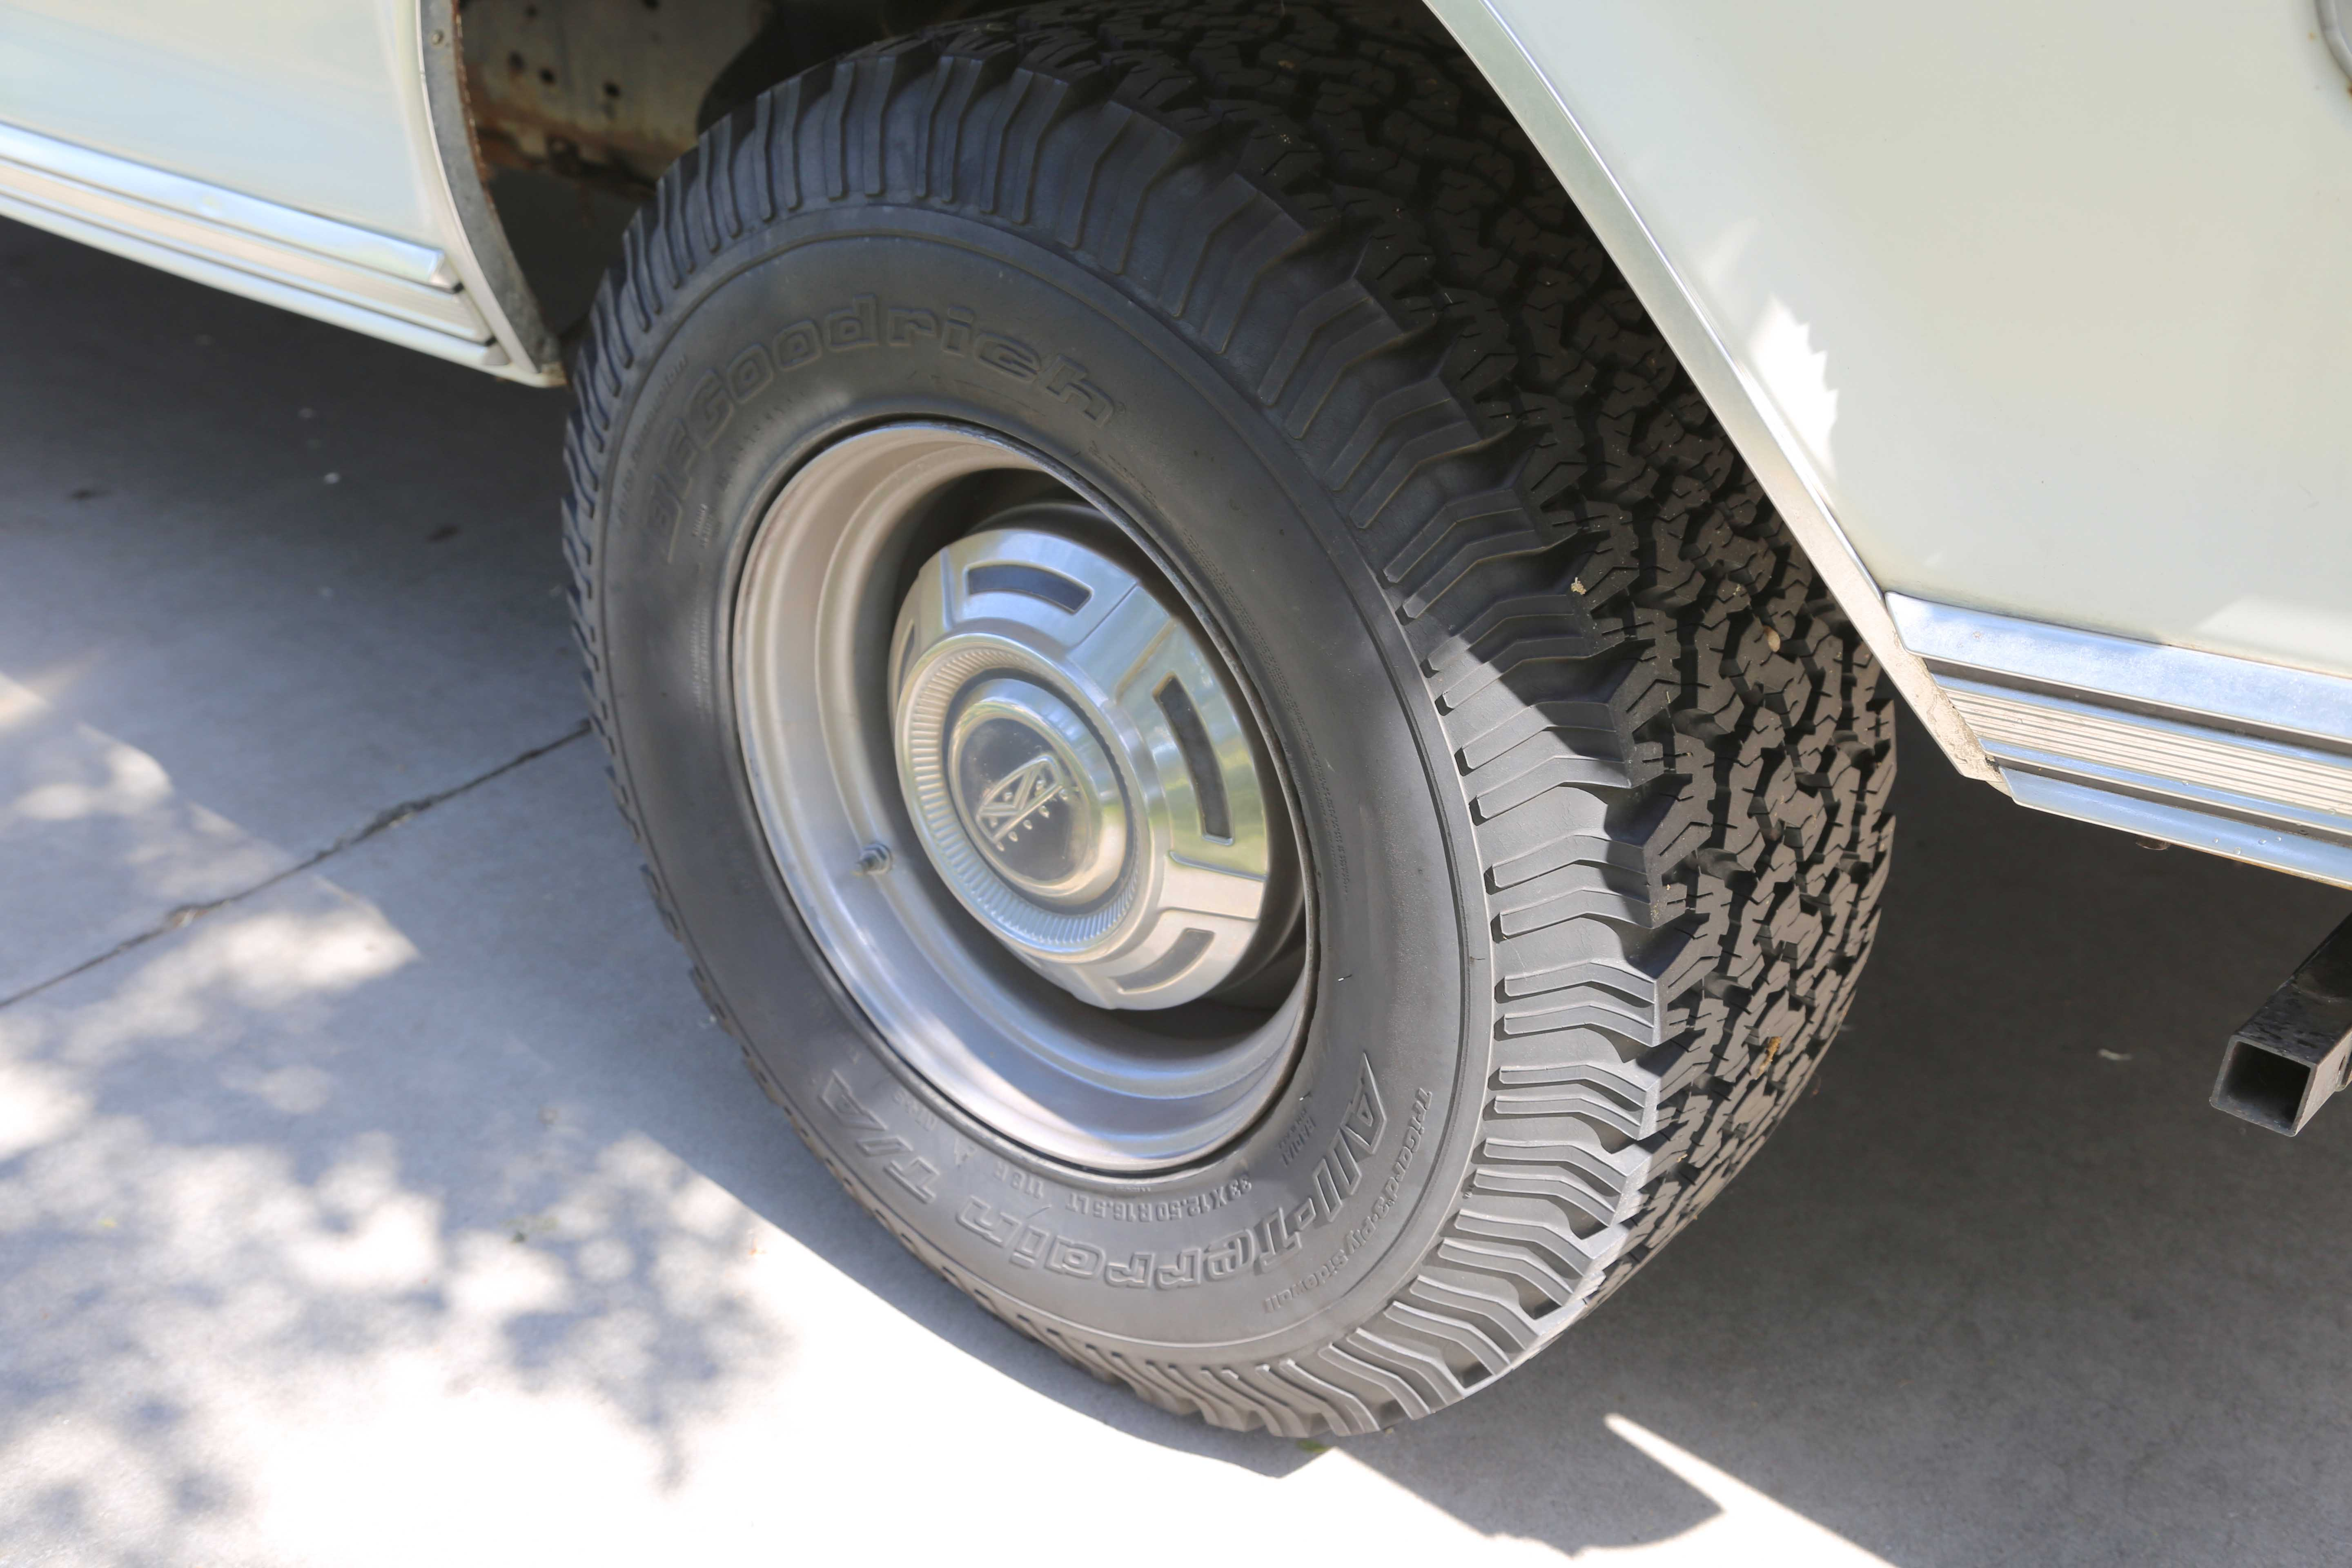 Front and rear stabilizer bars helped stability, as did these 9.50 x 16.5-inch wide steel rims, optional when ordering the 9500 GVW package. Standard rear wheels were 7.50 x 16.5 inches.